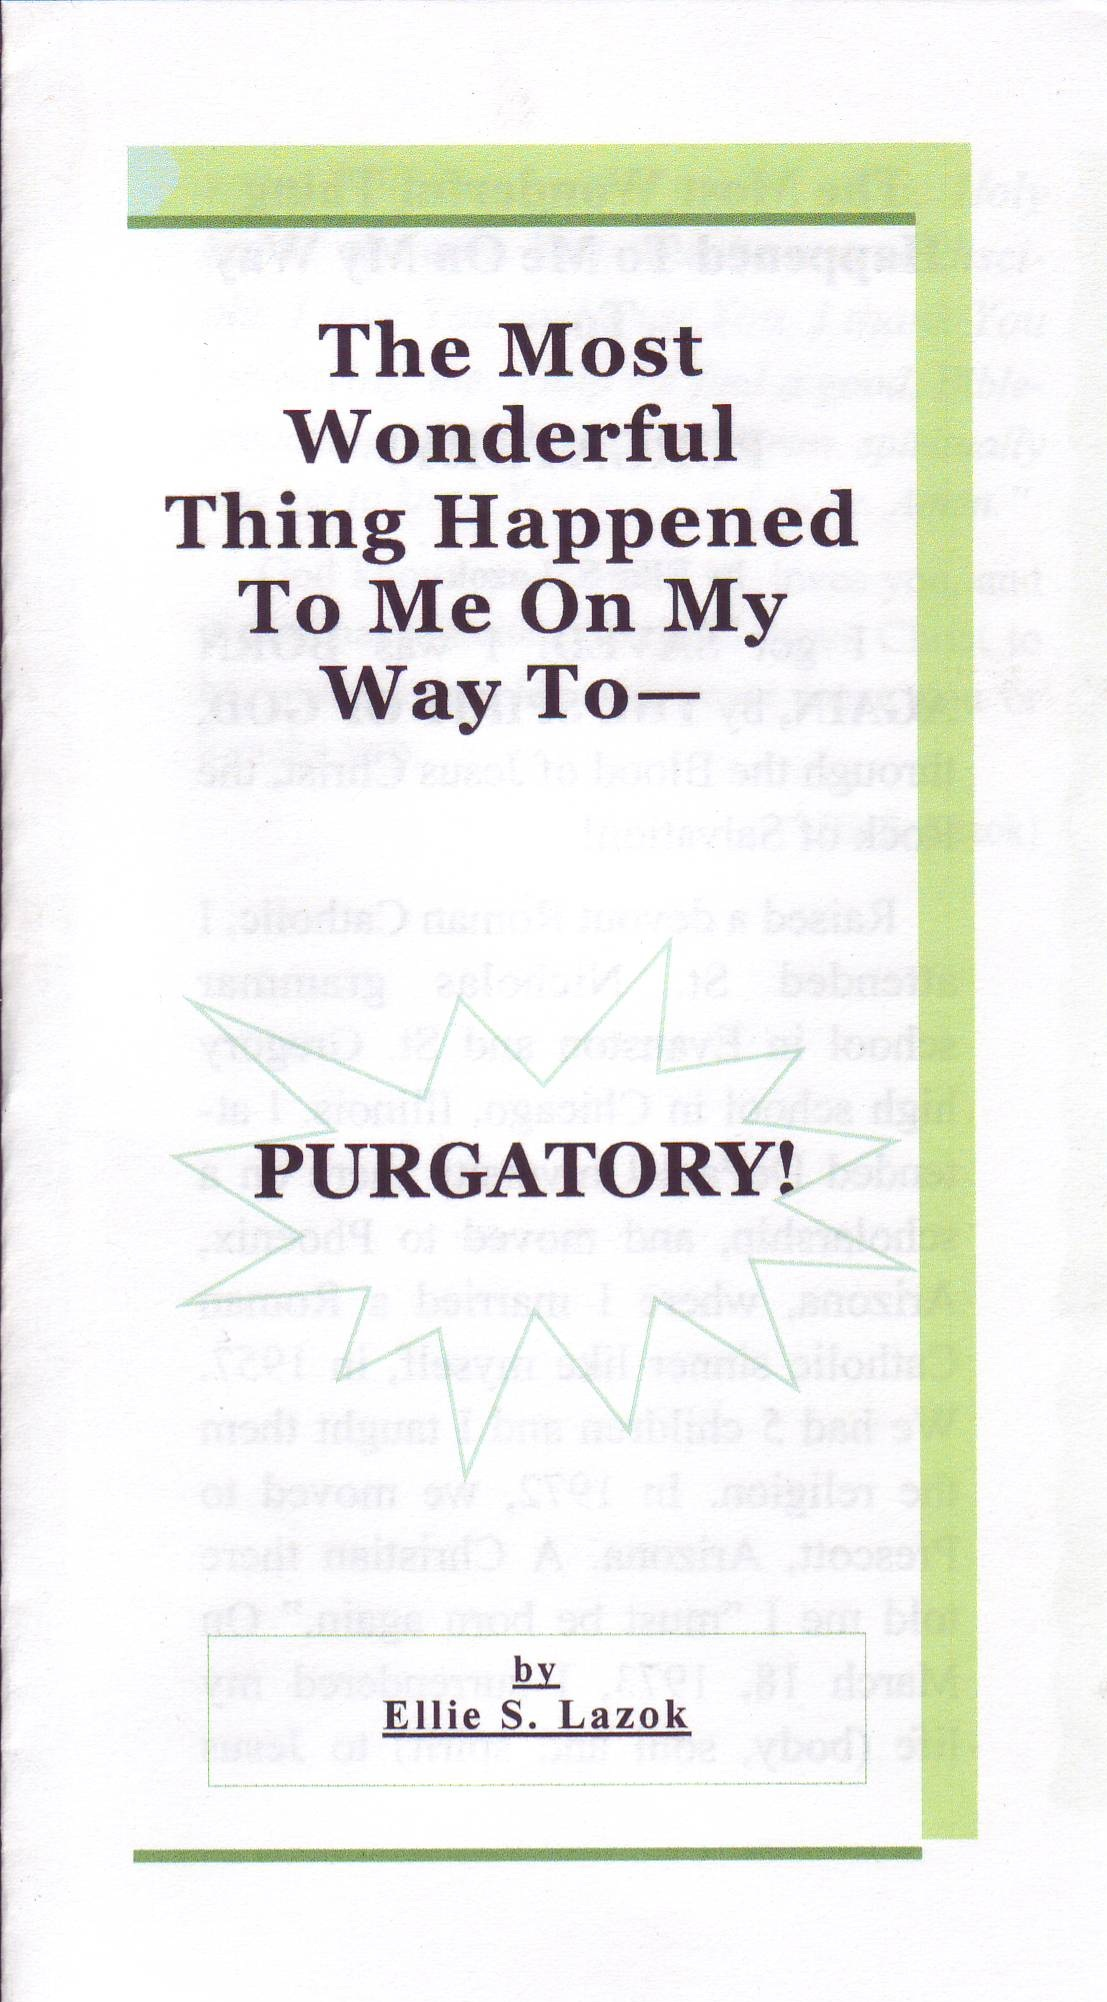 The Most Wonderful Thing Happened To Me On My Way To Purgatory!  Ellie S. Lazok